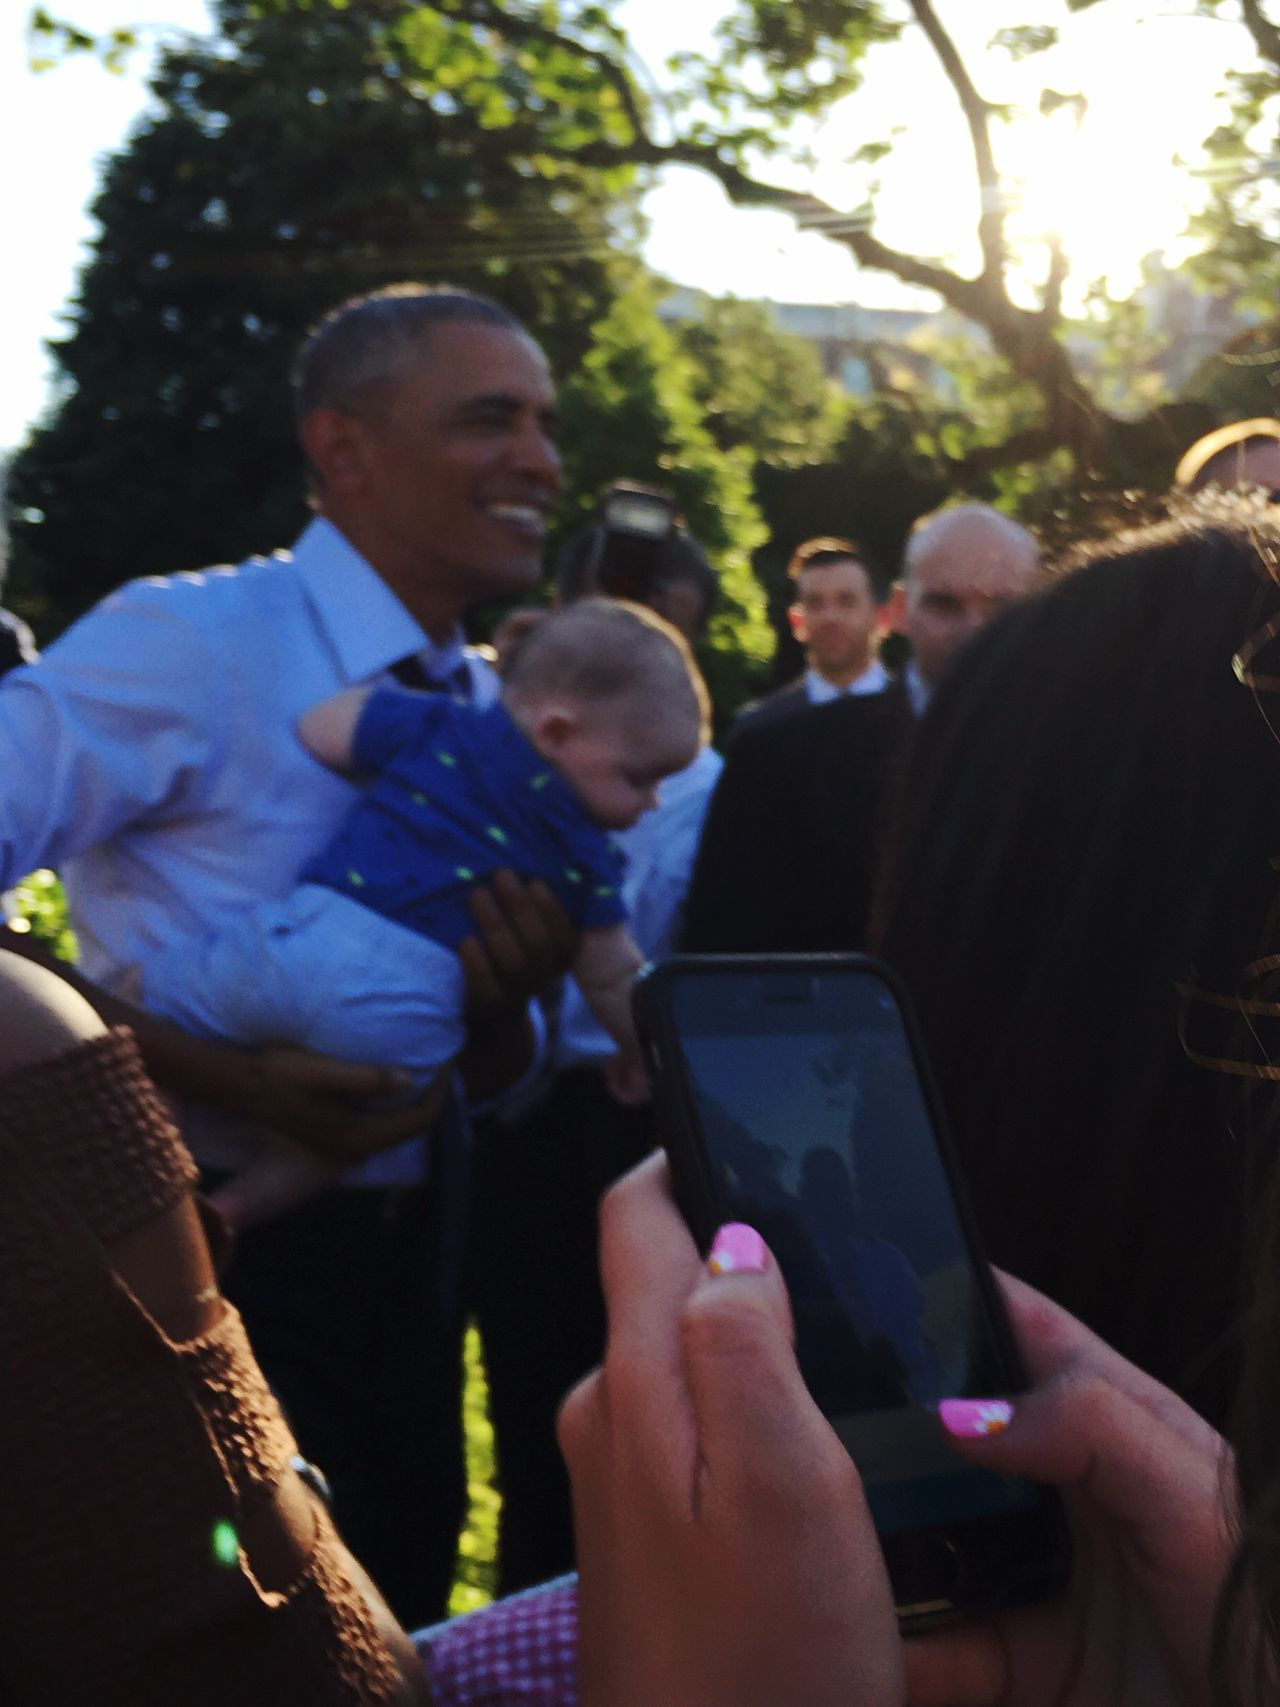 Communication Real People Wireless Technology Child Obama President Children Baby Disconnected Barriers Walls Holding Phone President Obama White House Politics Blurry Person Togetherness Close-up People Outdoors First Eyeem Photo